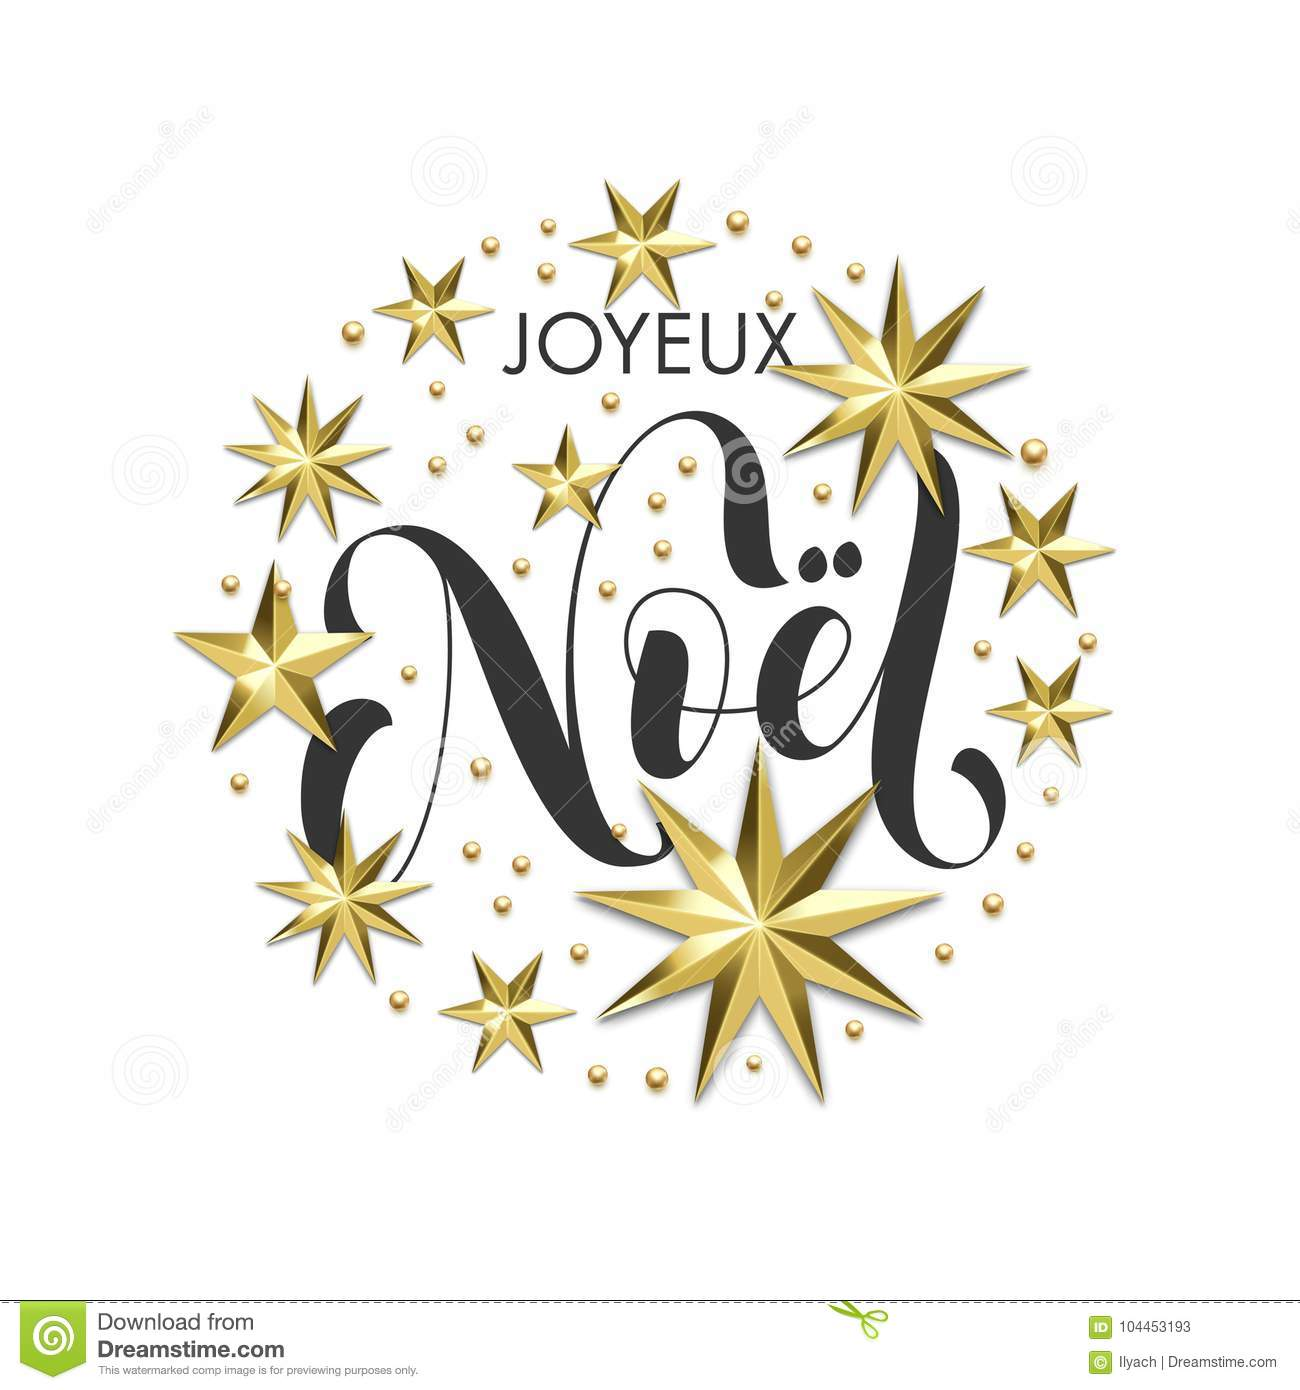 Joyeux noel french merry christmas golden star decoration joyeux noel french merry christmas golden star decoration calligraphy font for invitation or xmas greeting card vector christmas stock vector stopboris Gallery